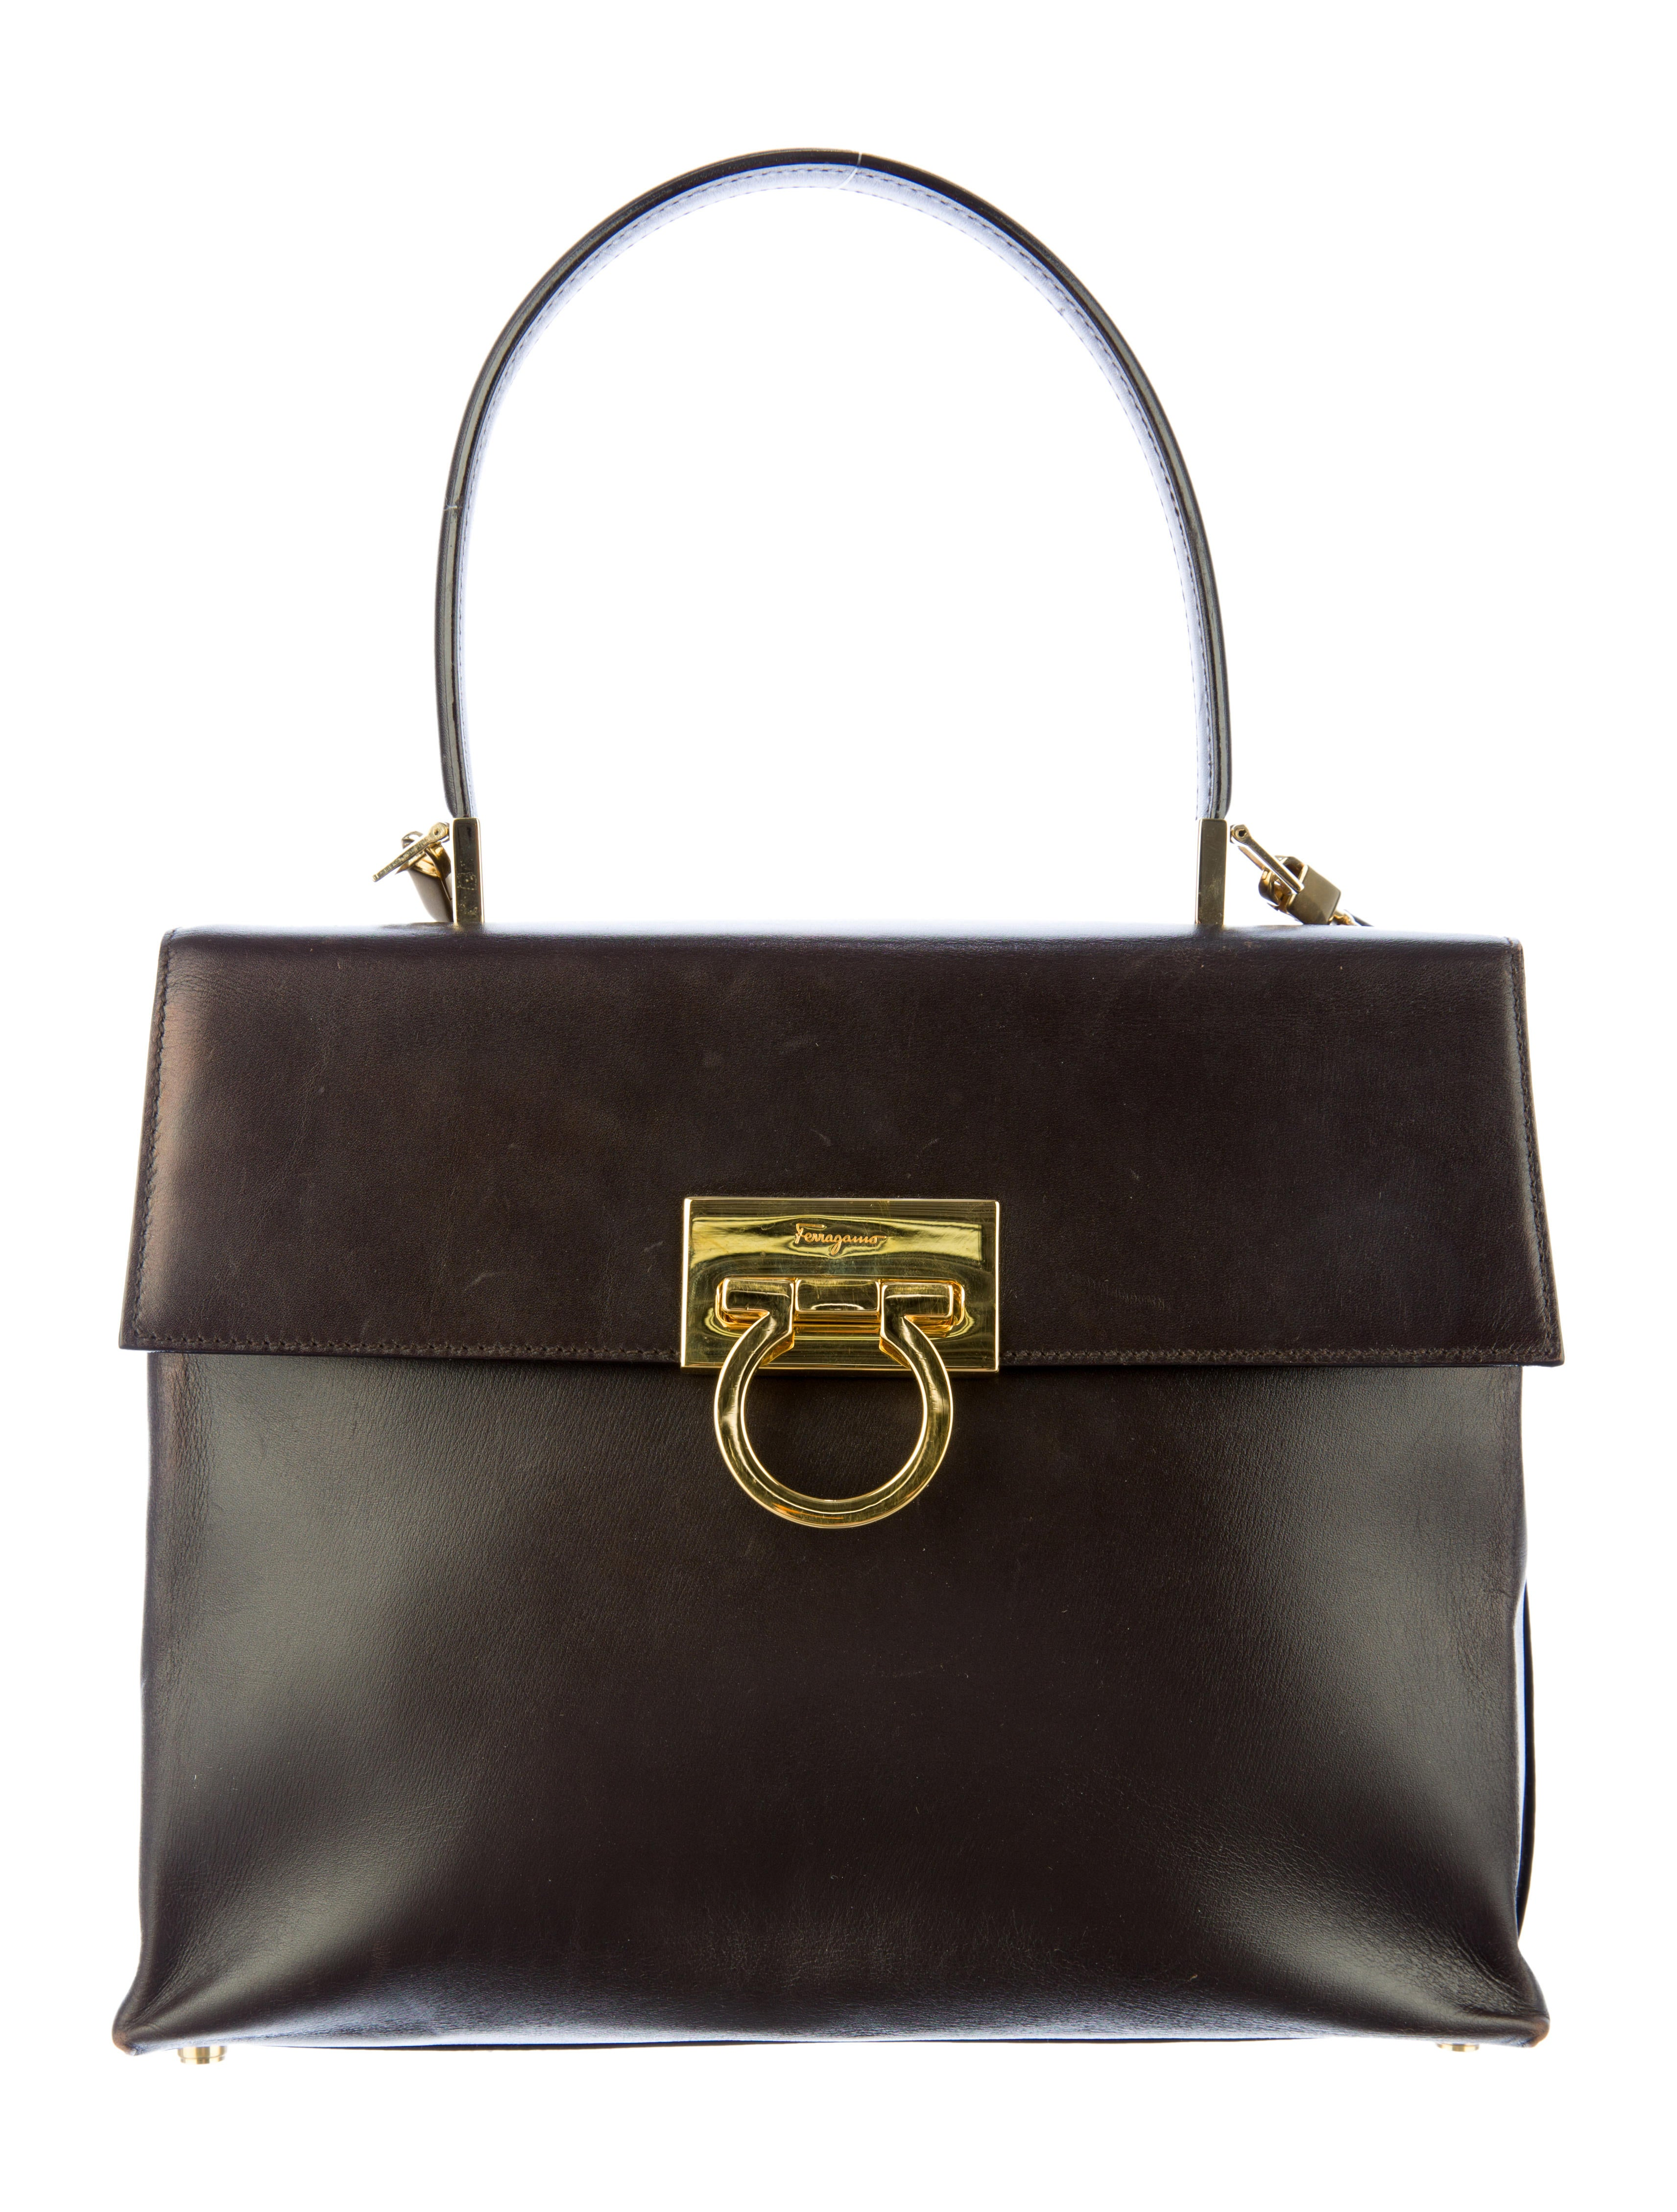 3529f2ed24 Salvatore Ferragamo Kelly Bag - Handbags - SAL21996